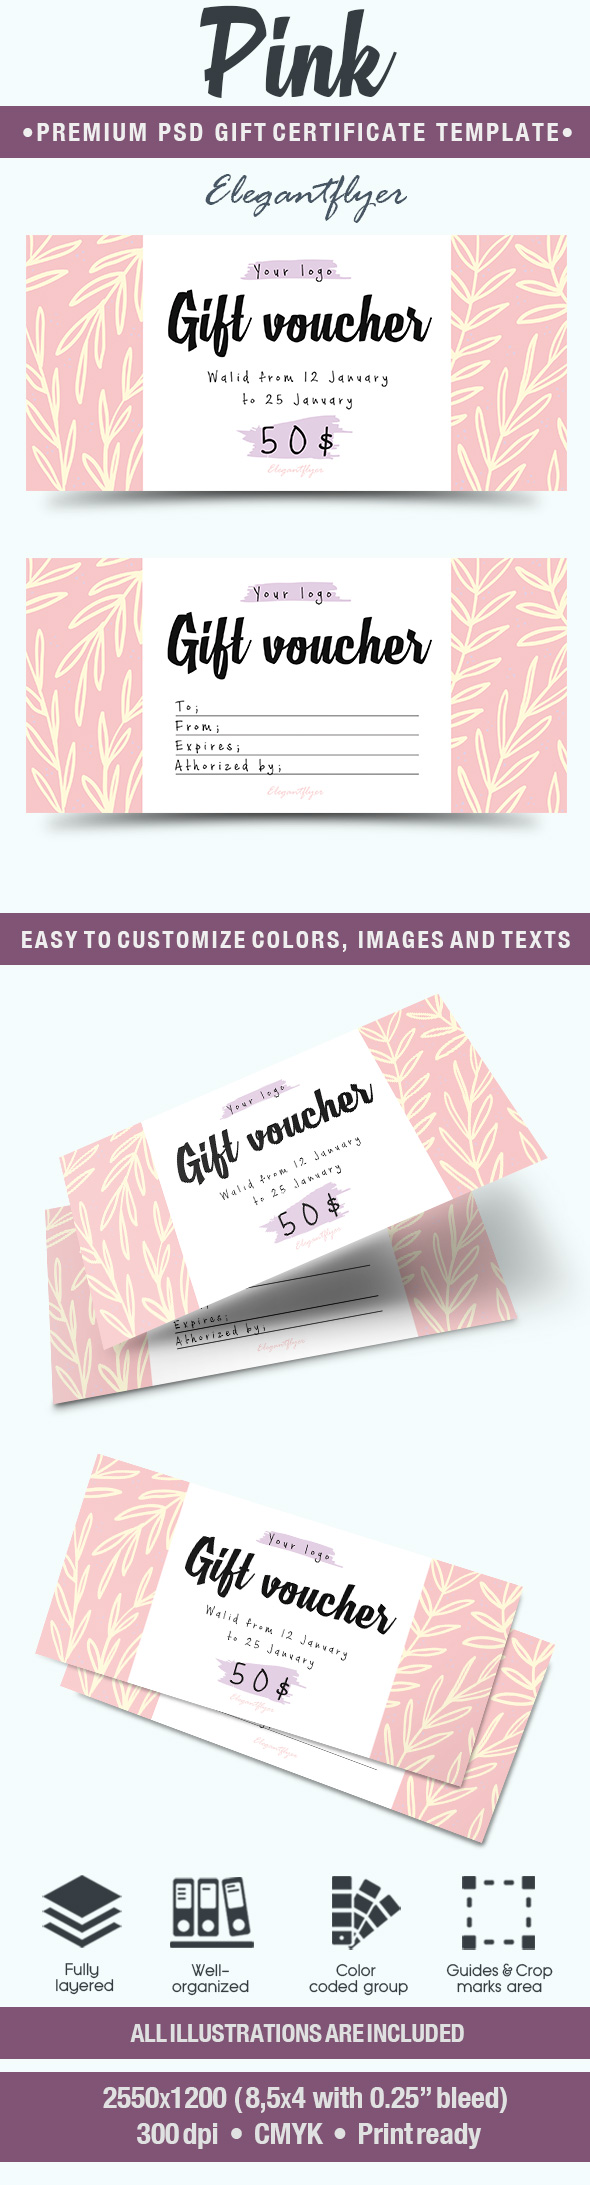 Gift Certificate for Pink Template